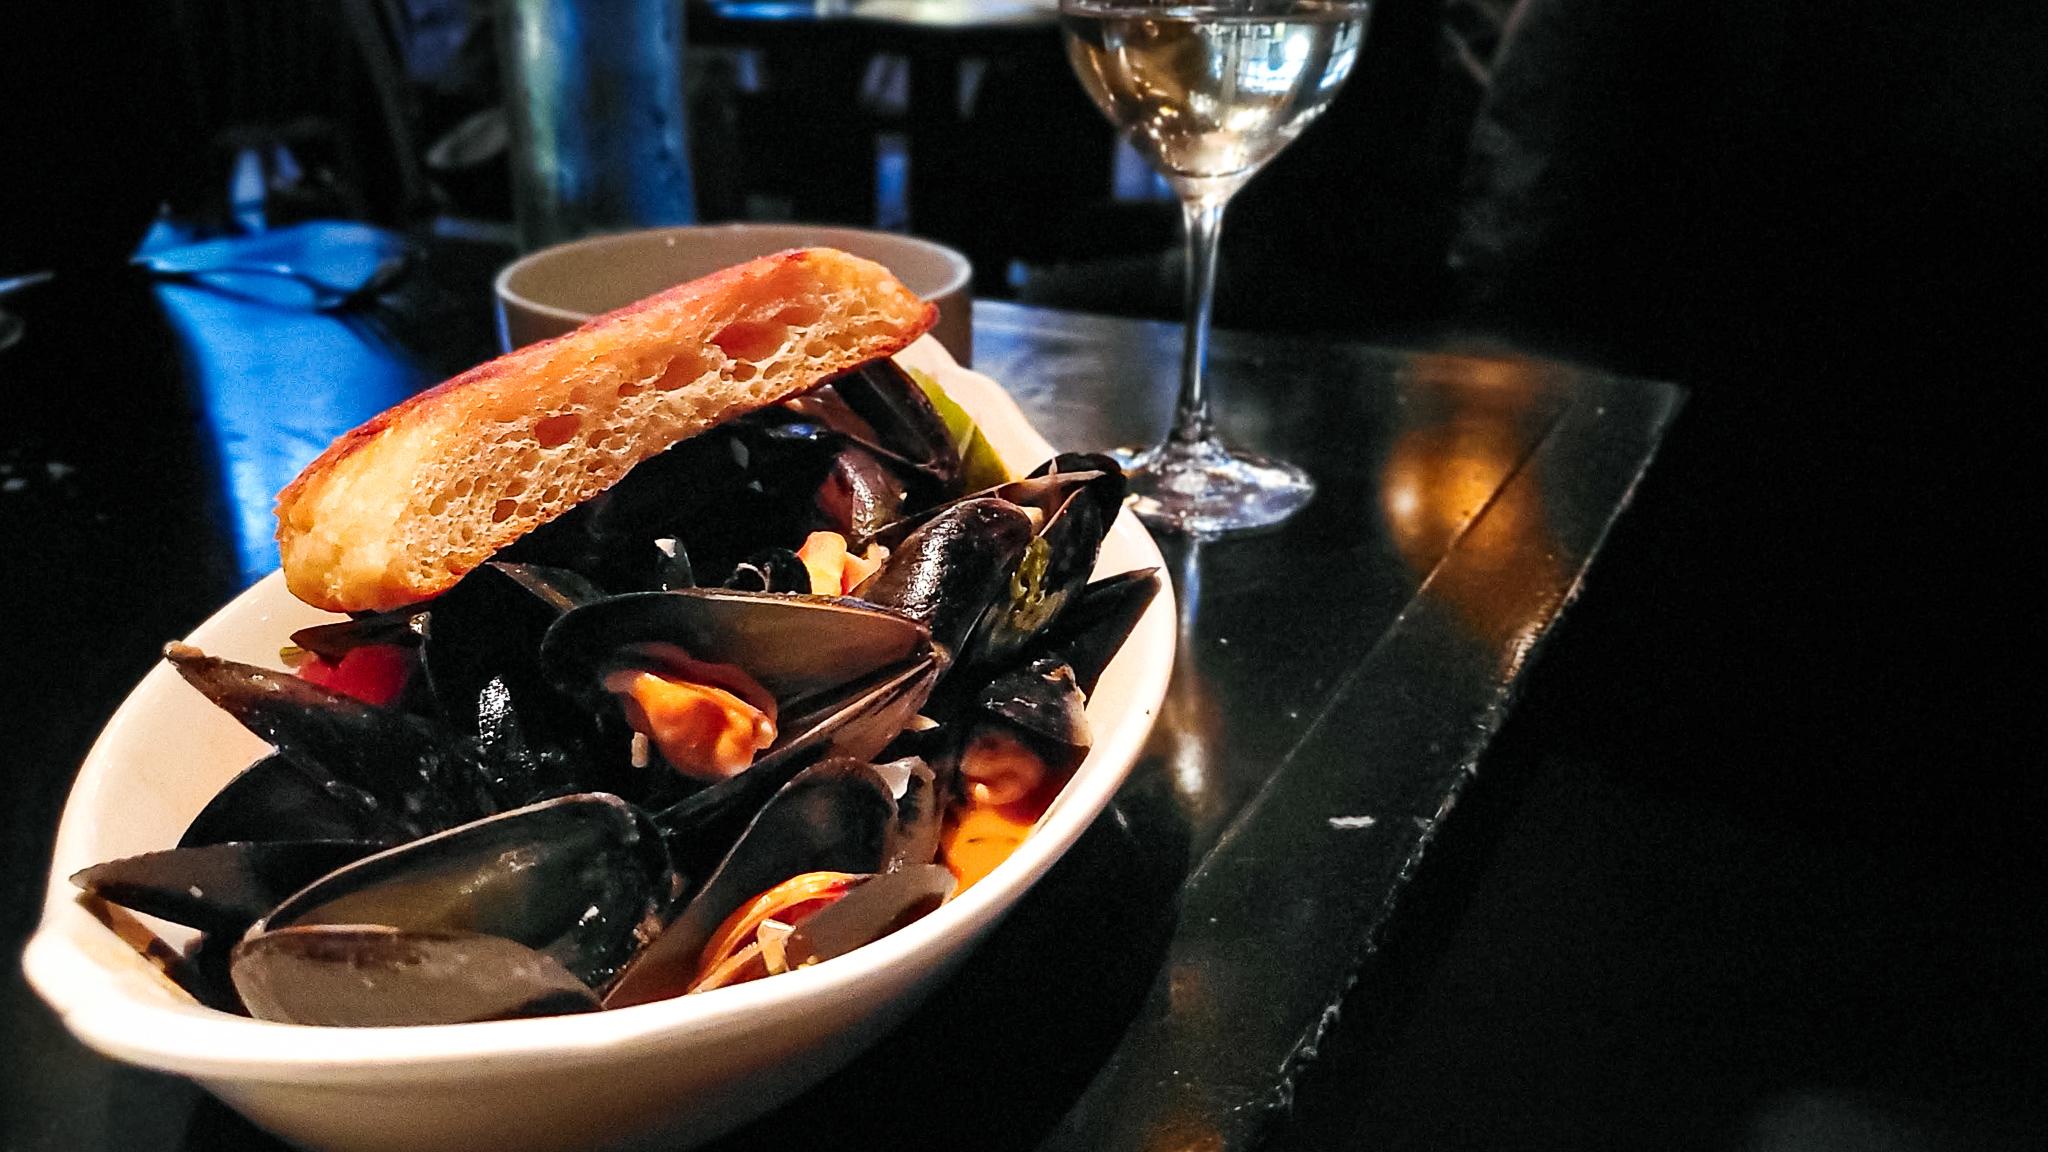 Mussels at Two Urban Licks swimming in a tomato, cilantro, lime sauce (c) Anna Lanfreschi